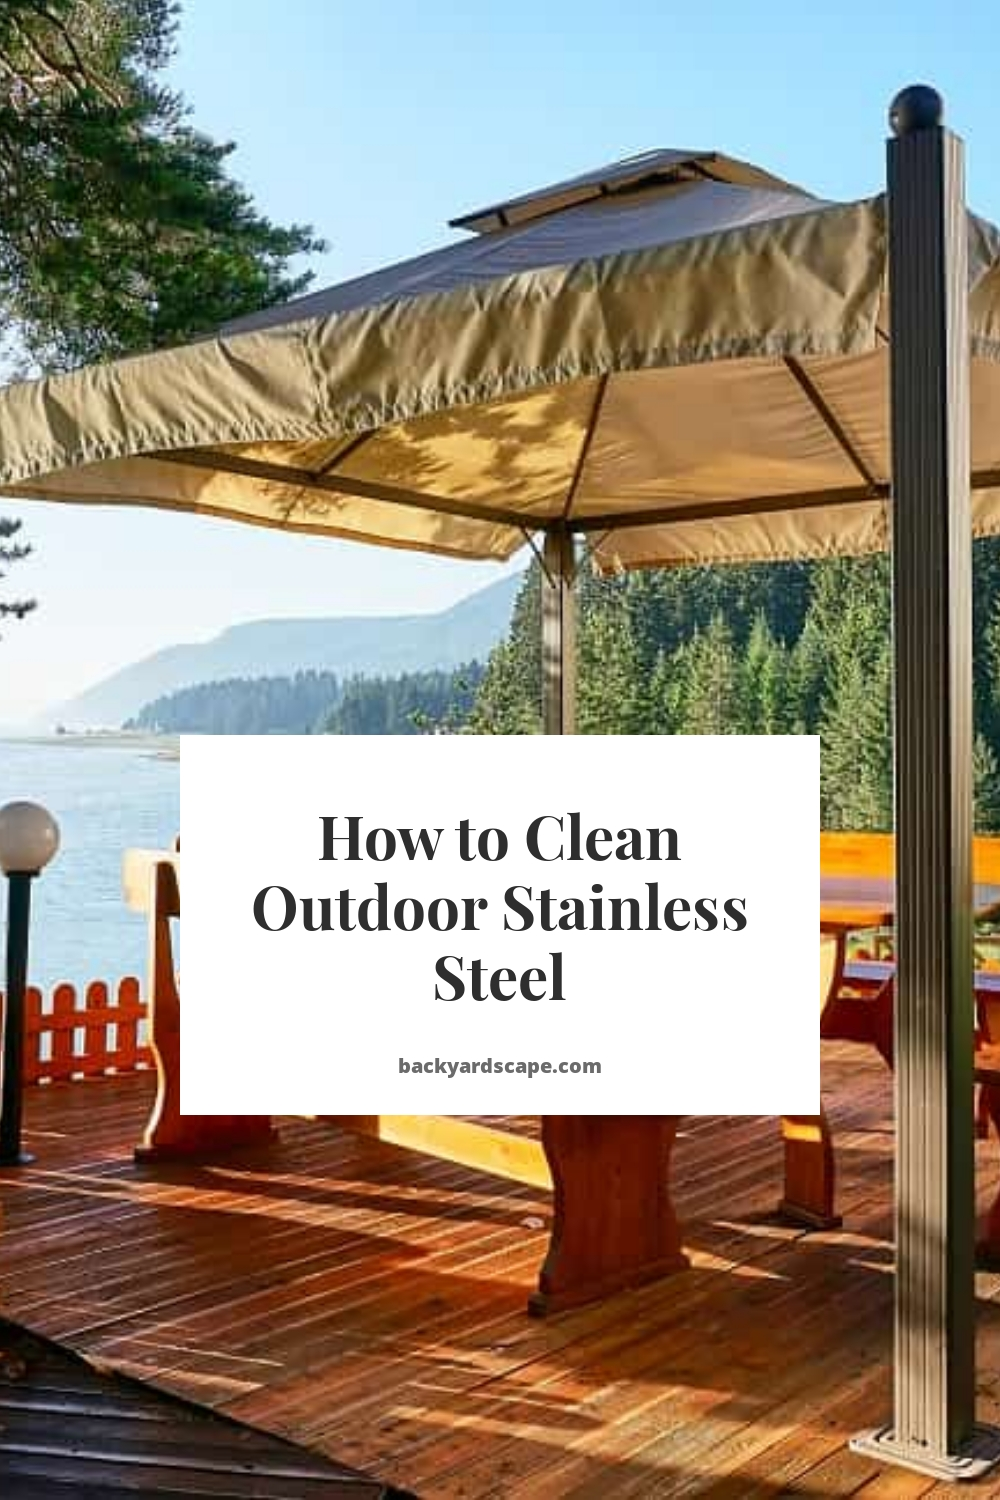 How to Clean Outdoor Stainless Steel